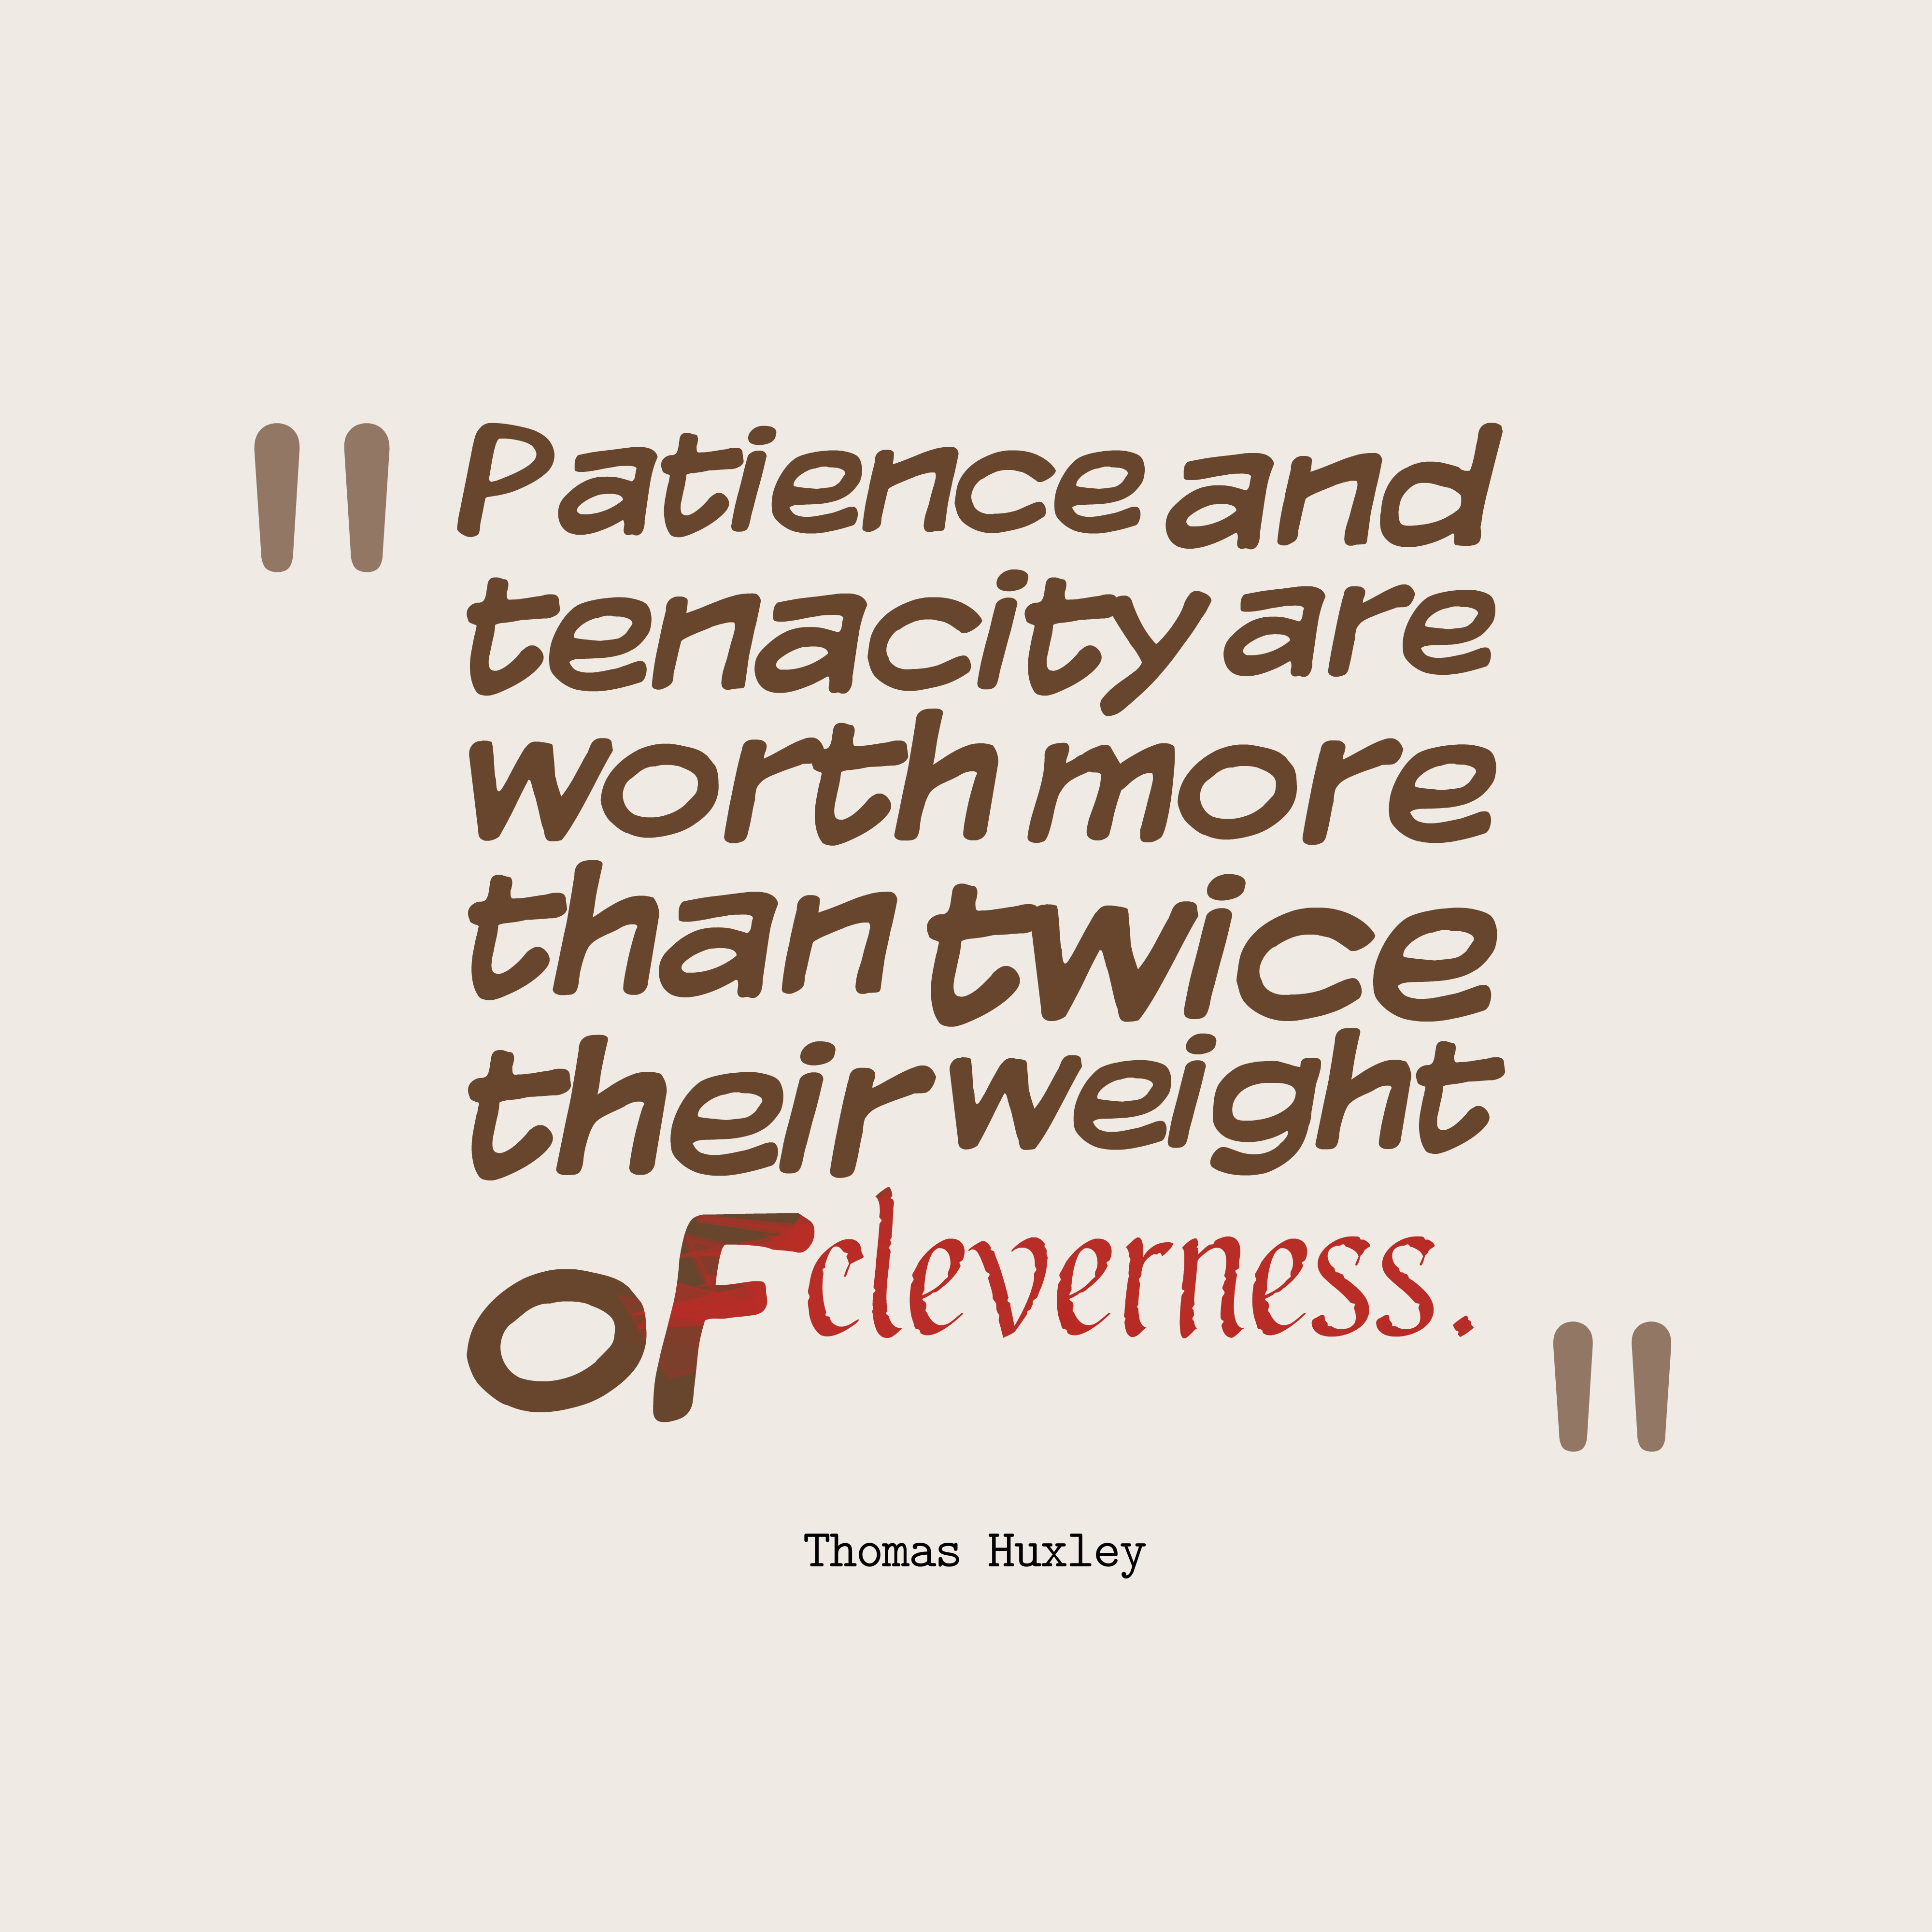 Thomas Huxley Quote About Patience